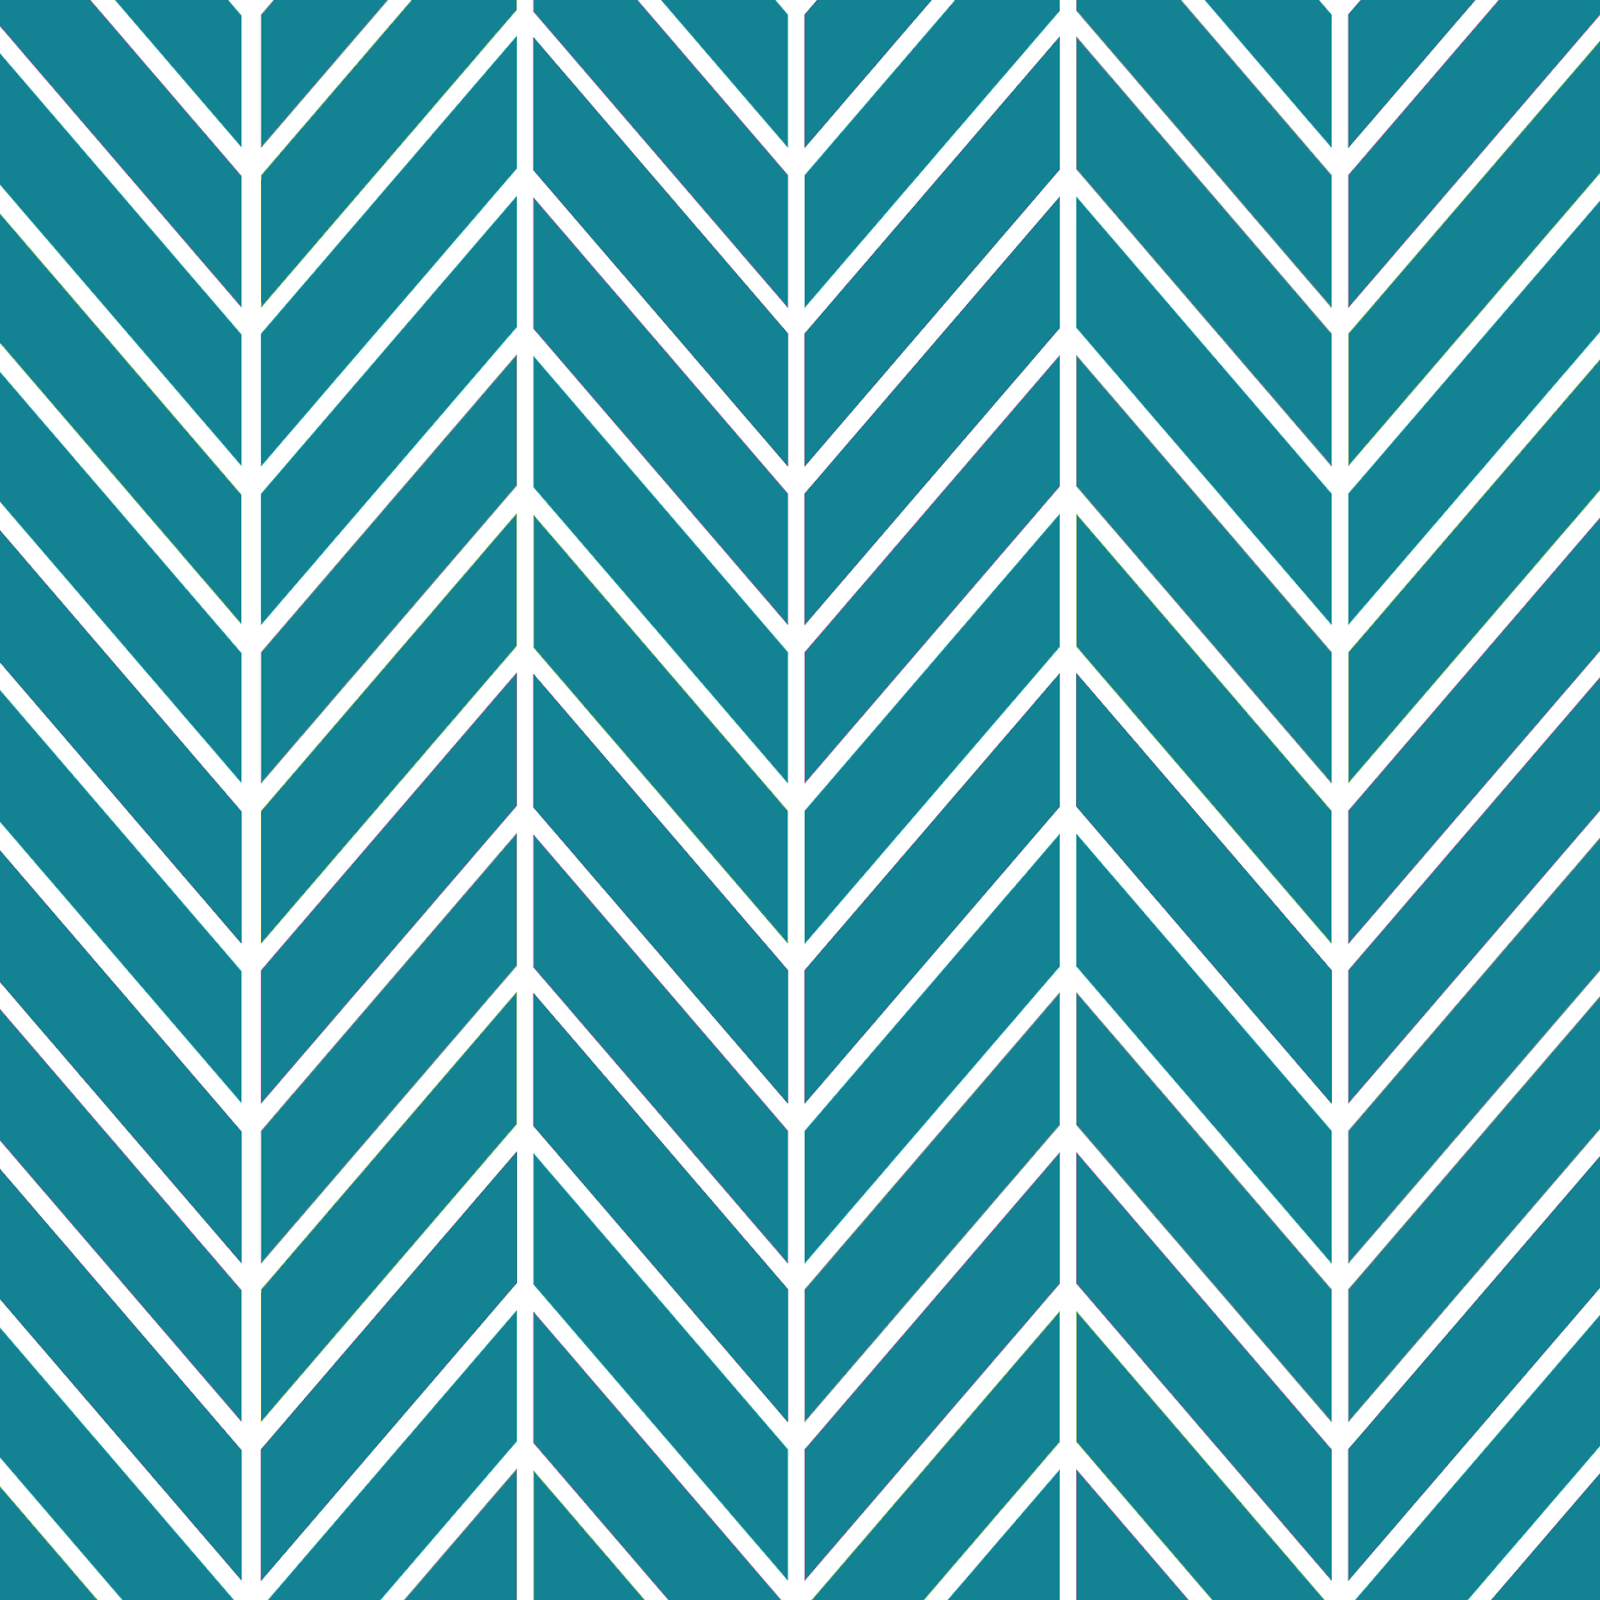 chevron pattern background - HD 1600×1600